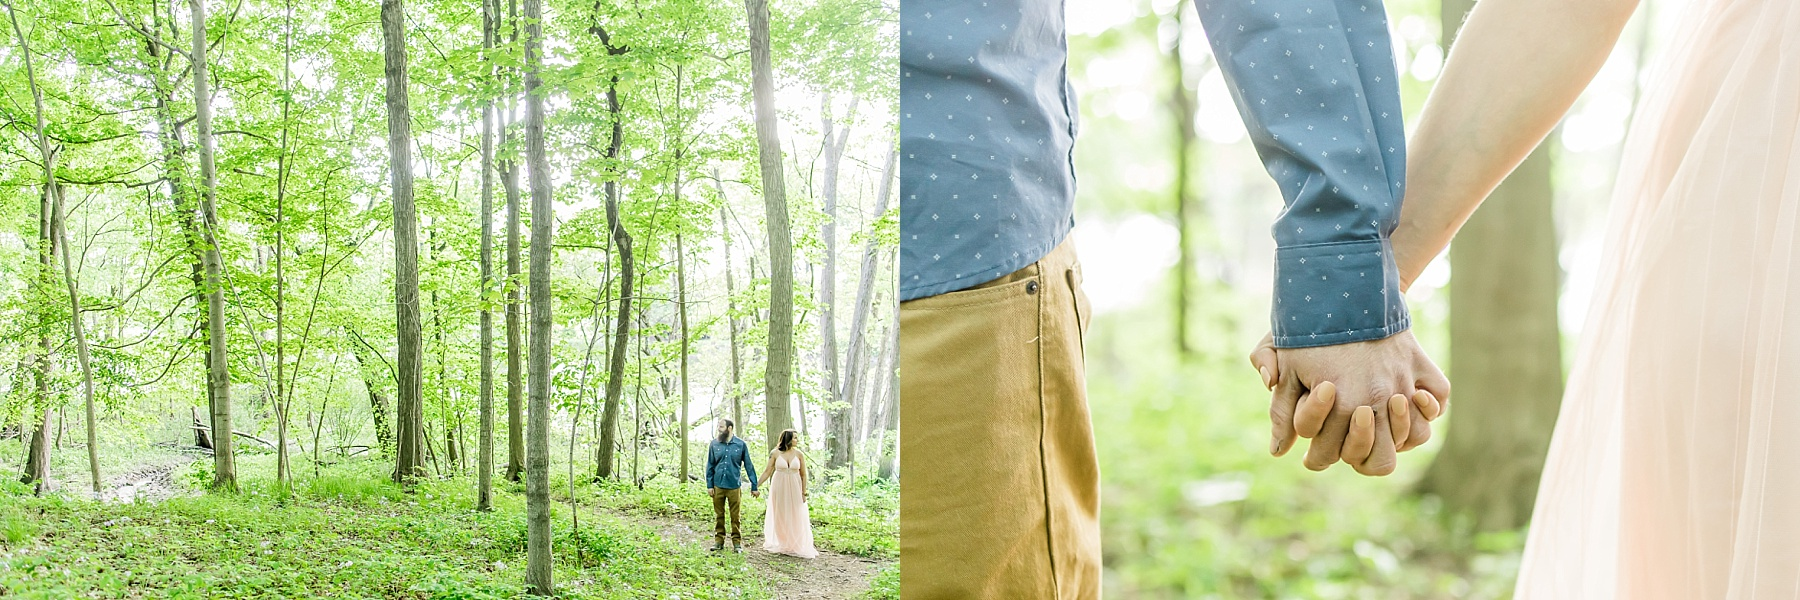 monticello indiana wedding engagement photography simple adventure weird_0016.jpg